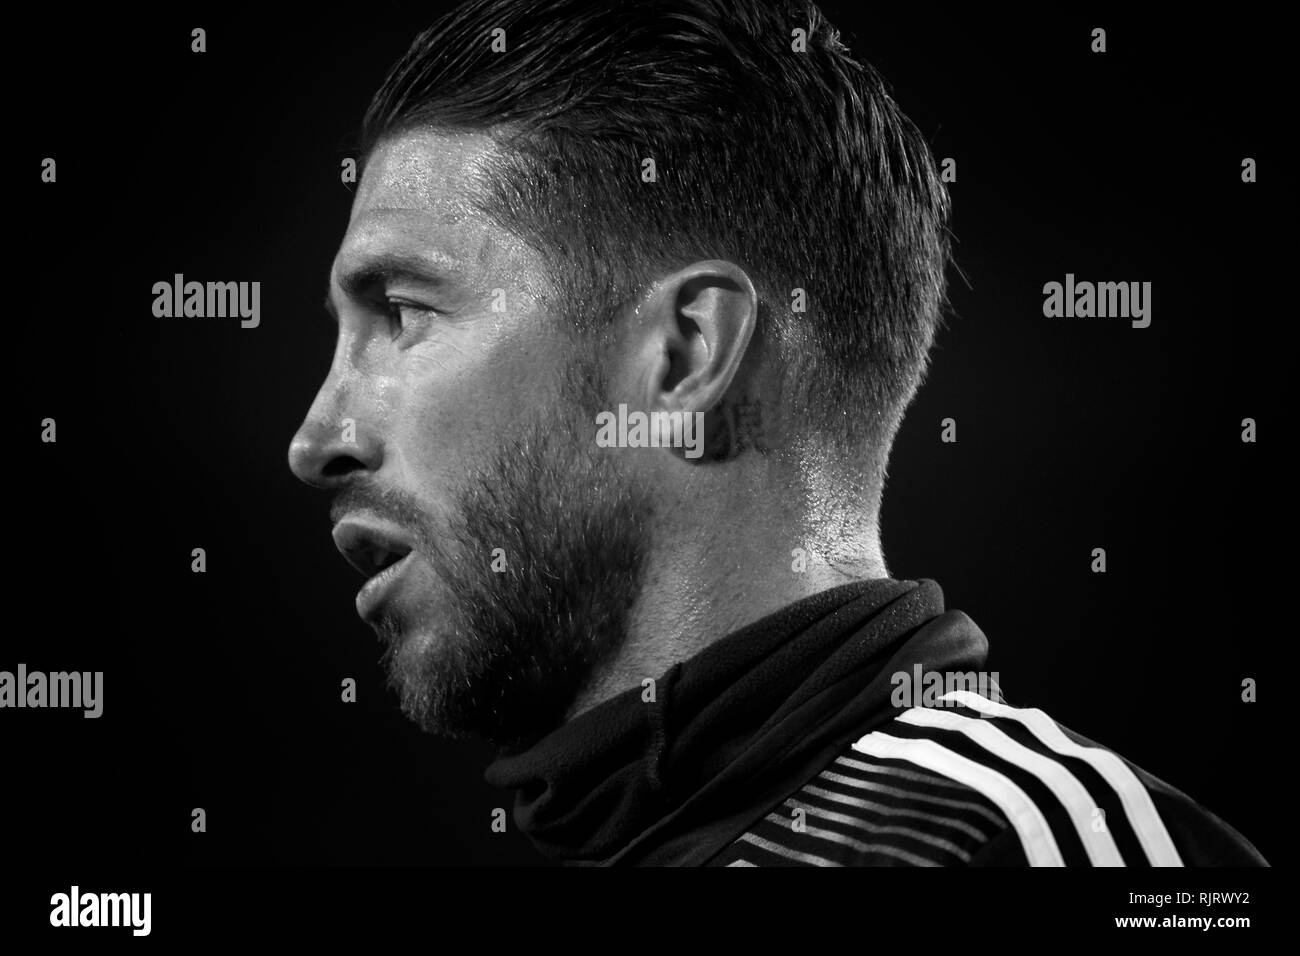 Black And White Madrid sergio ramos black and white stock photos & images - alamy